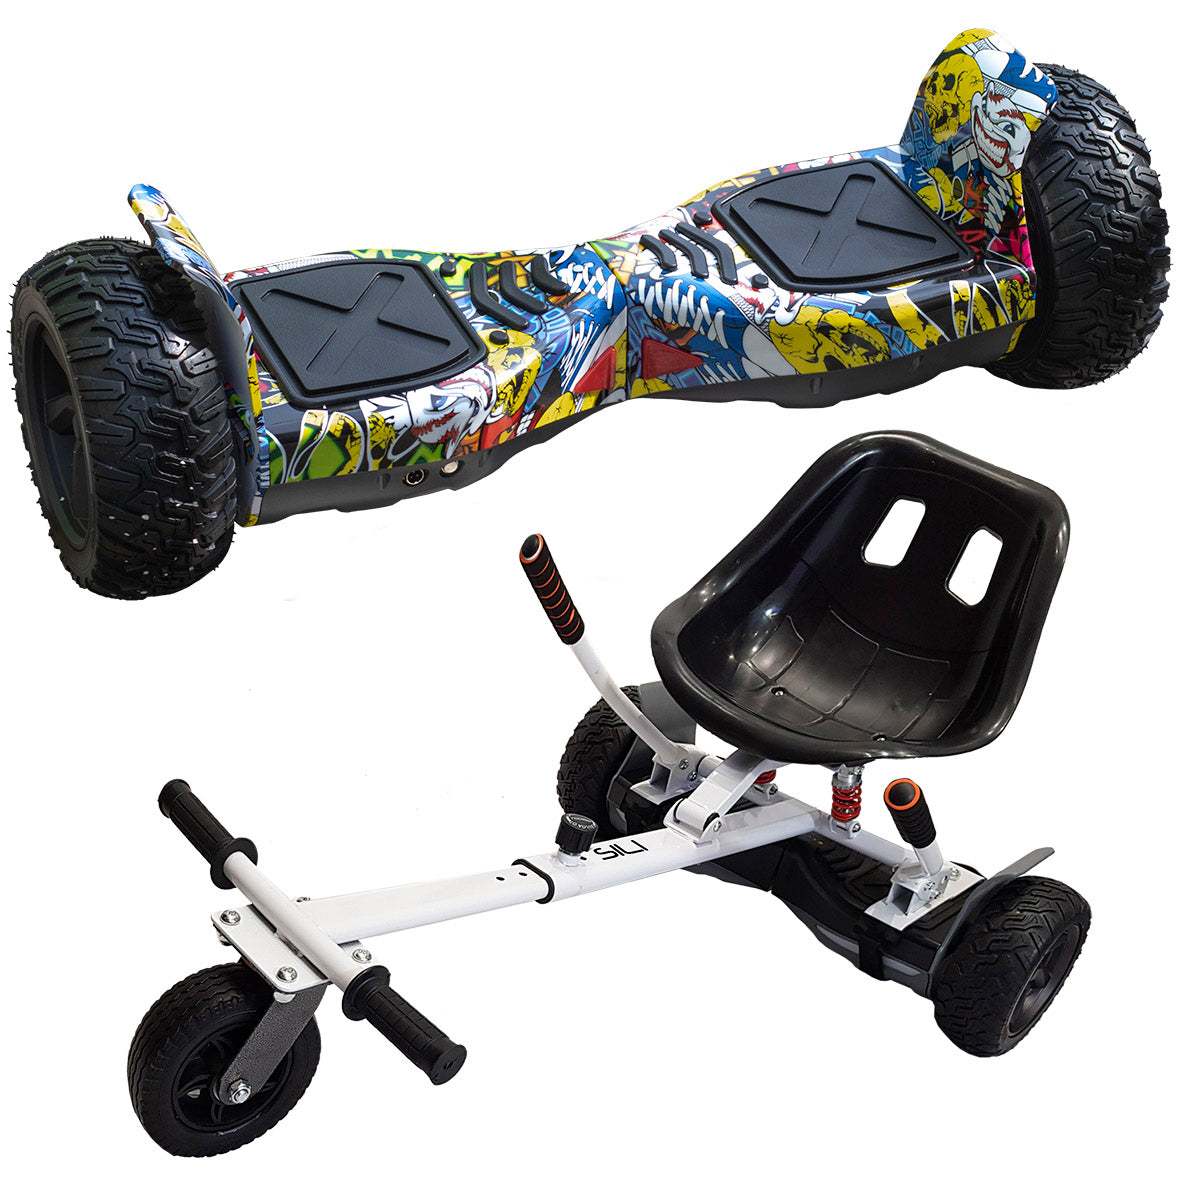 ALL TERRAIN BLUETOOTH 8.5″ HOVERBOARD SWEGWAY IN COMIC & SUSPENSION HOVERKART BUNDLE